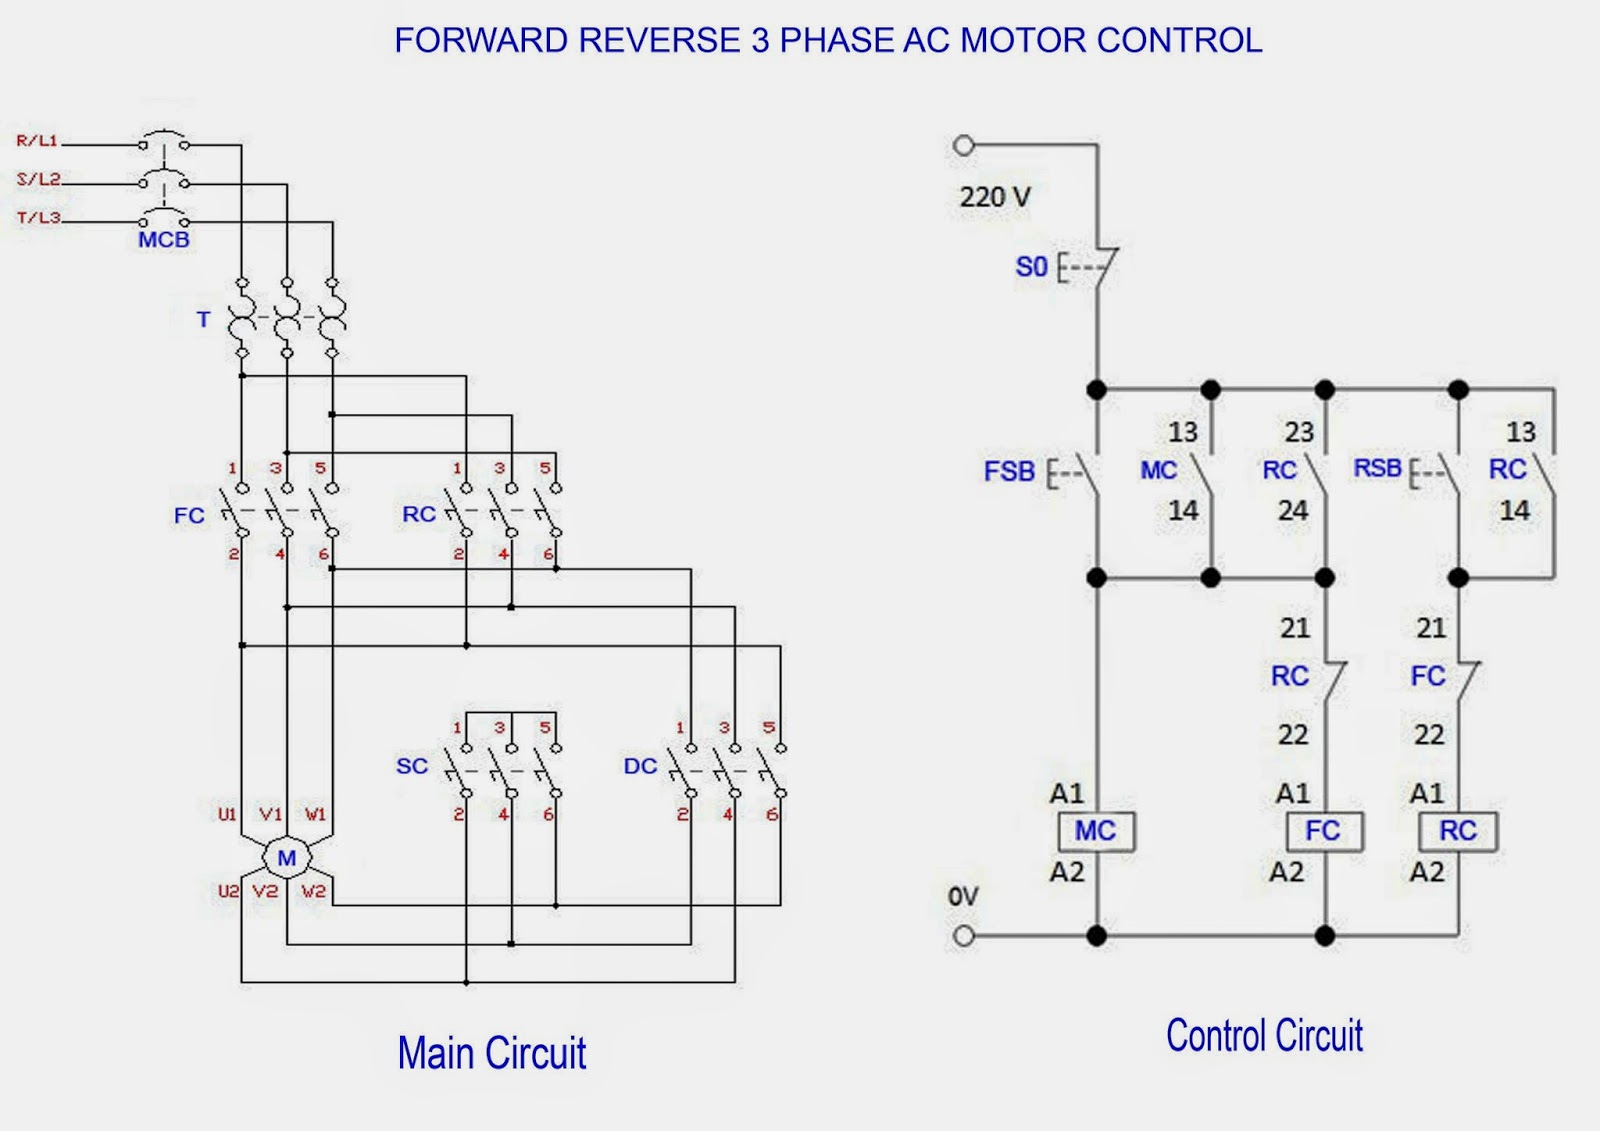 3 Phase Motor Connection Query 289960 together with Using potential transformers moreover Grounding Transformer Wiring Diagram further Wiring Diagram For Dayton Electric Motor further High Leg delta. on wye delta connection